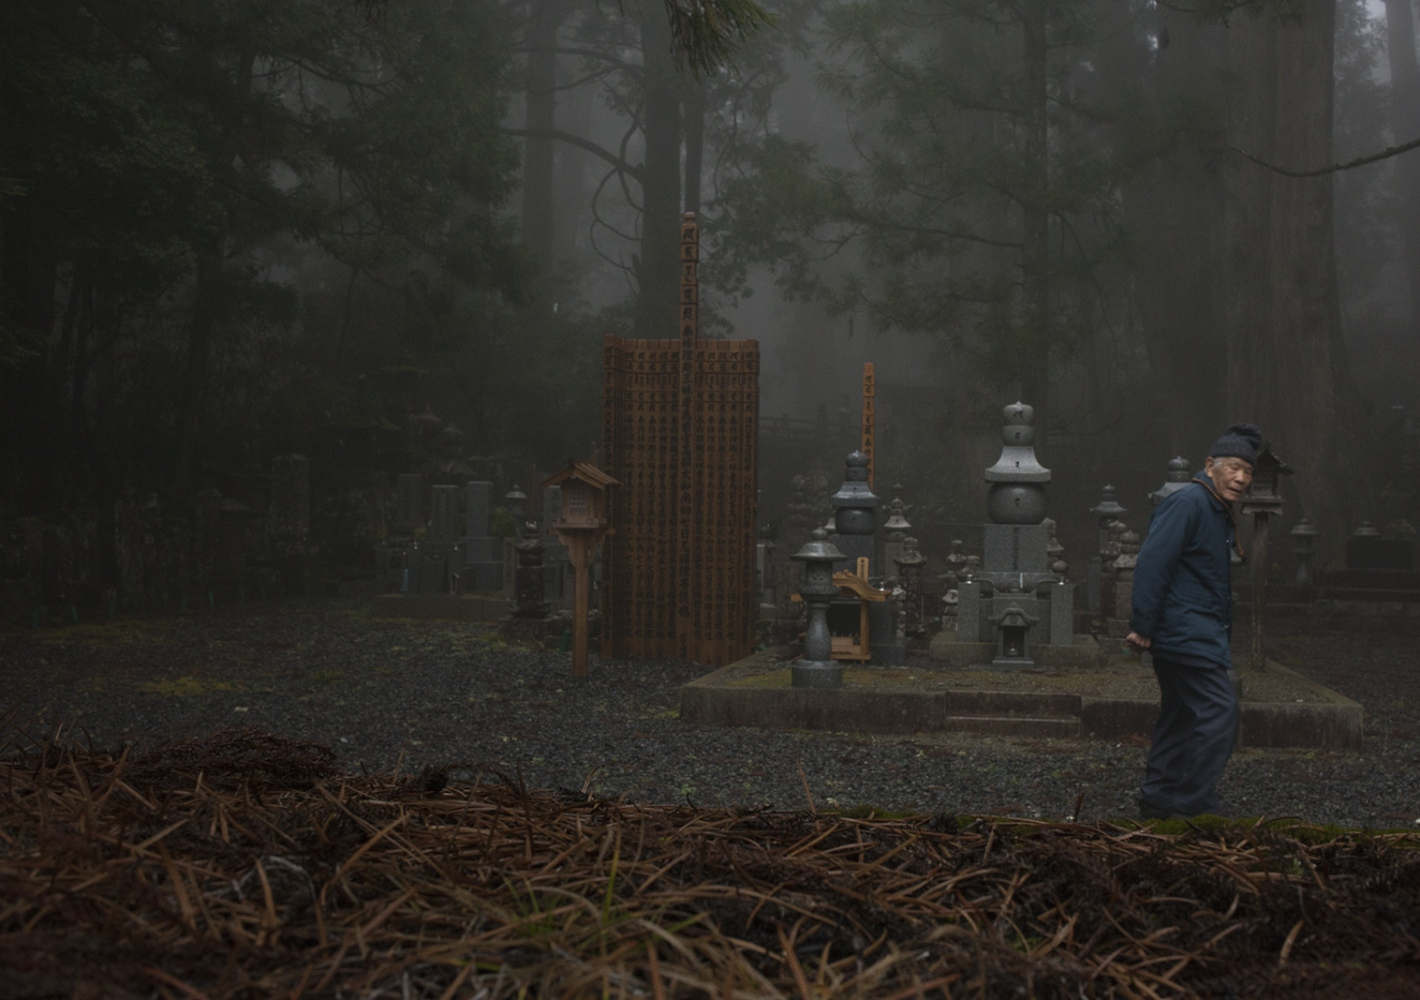 Elderly man walking in the cemetery, Japan 2015.